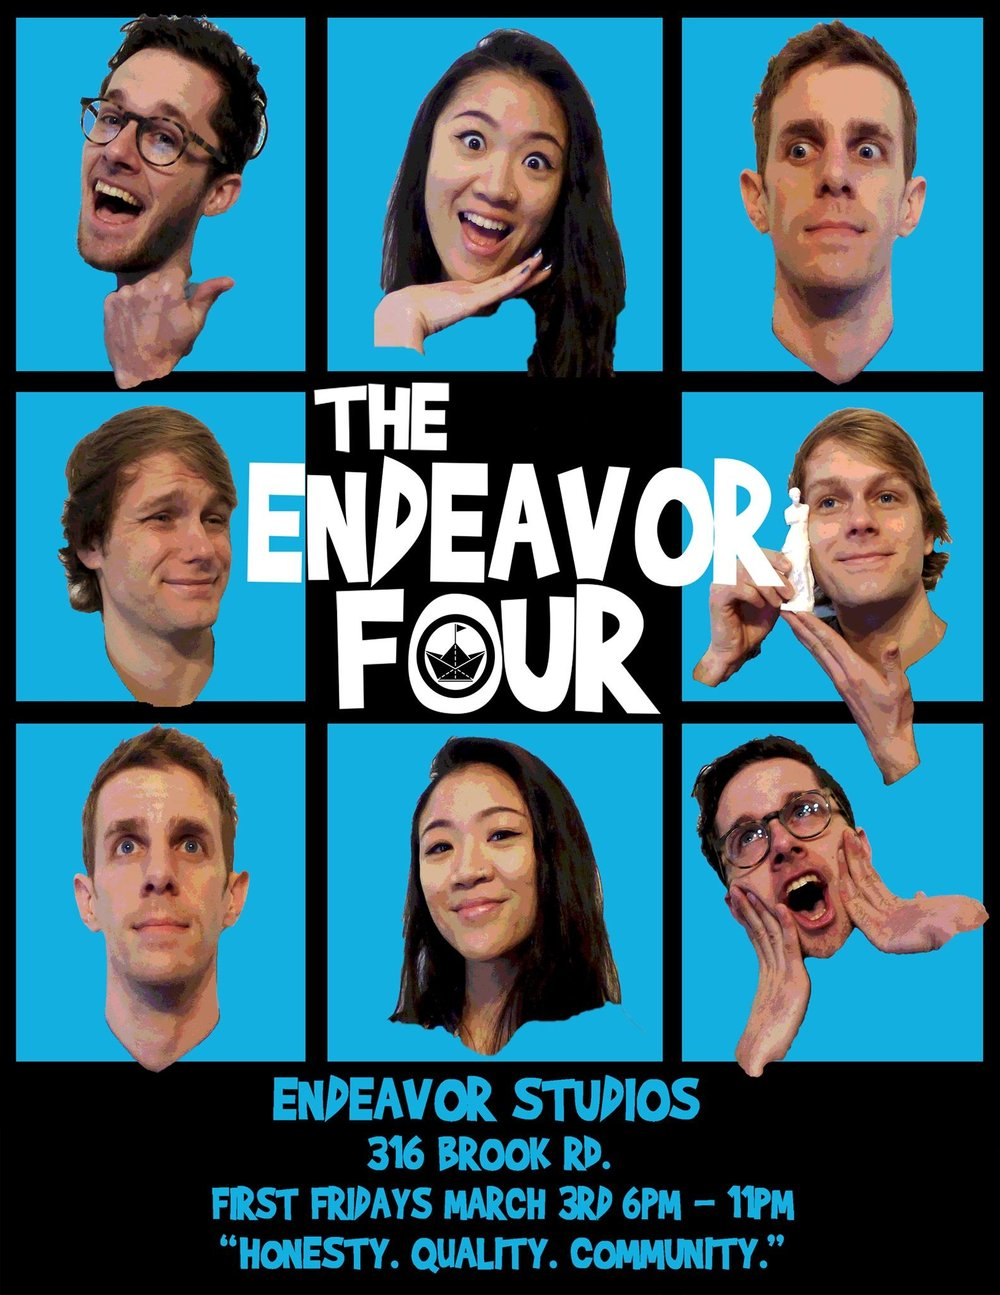 First Friday Event-The Endeavor Four